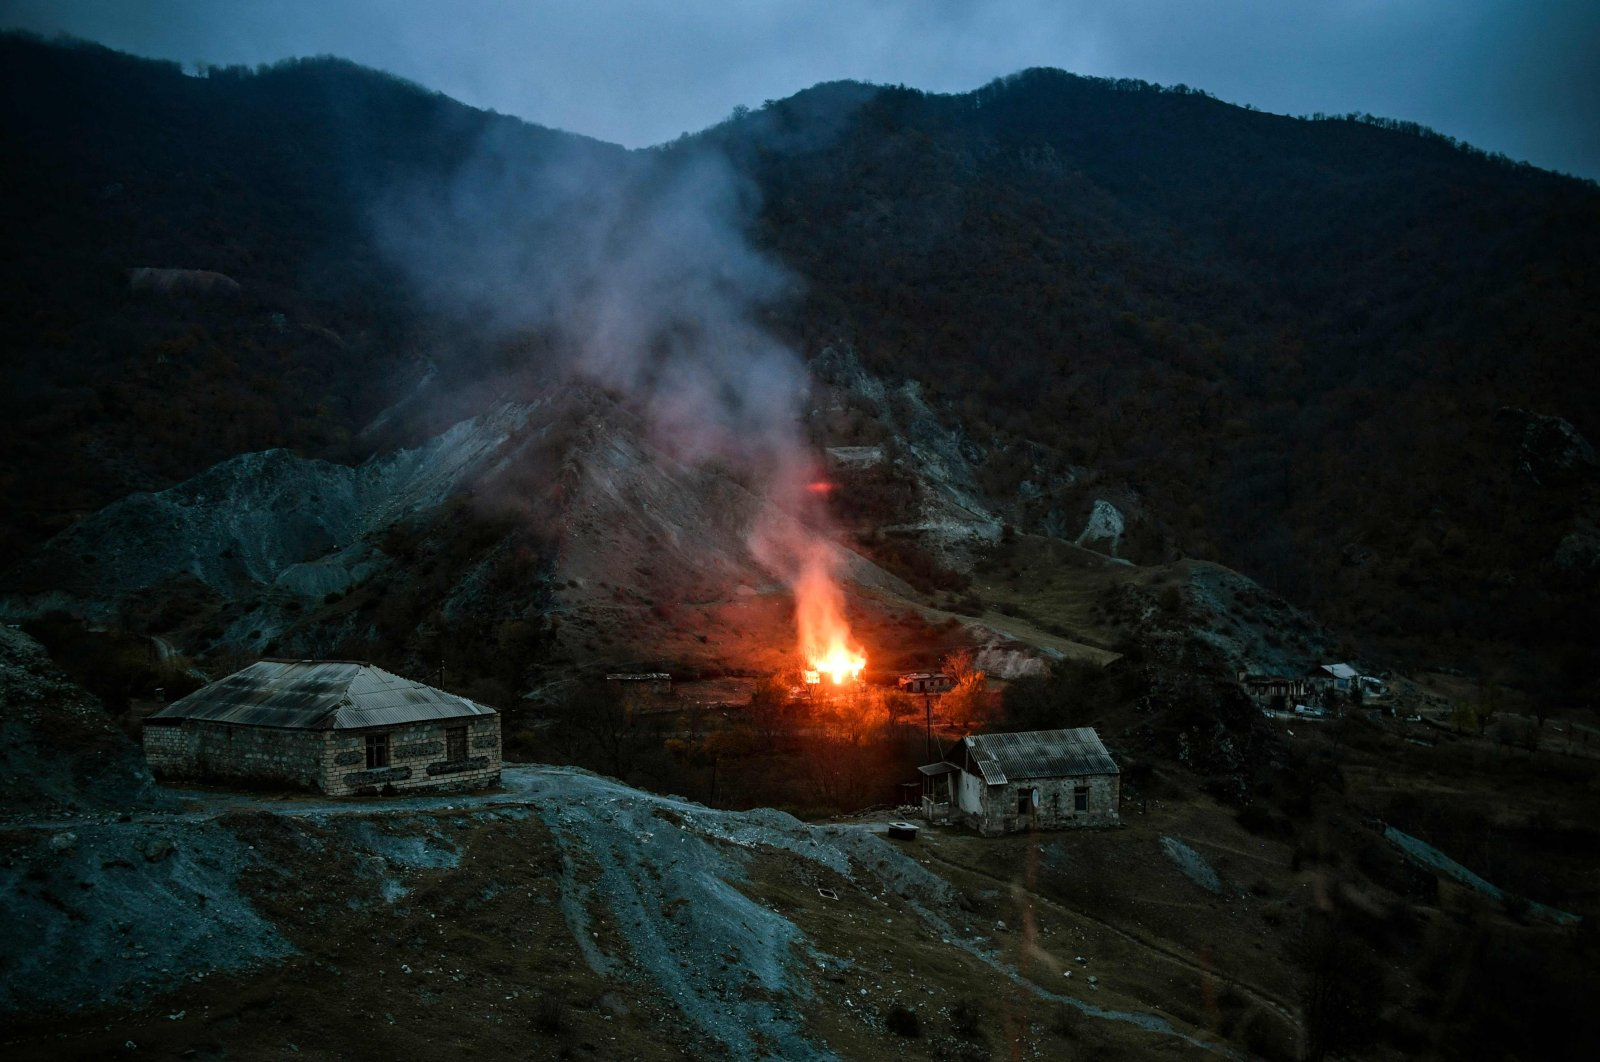 A house burns in a village outside the town of Kalbajar, after a peace agreement was signed to end the military conflict between Armenia and Azerbaijan over the disputed Nagorno-Karabakh region,  Nov. 14, 2020. (AFP Photo)